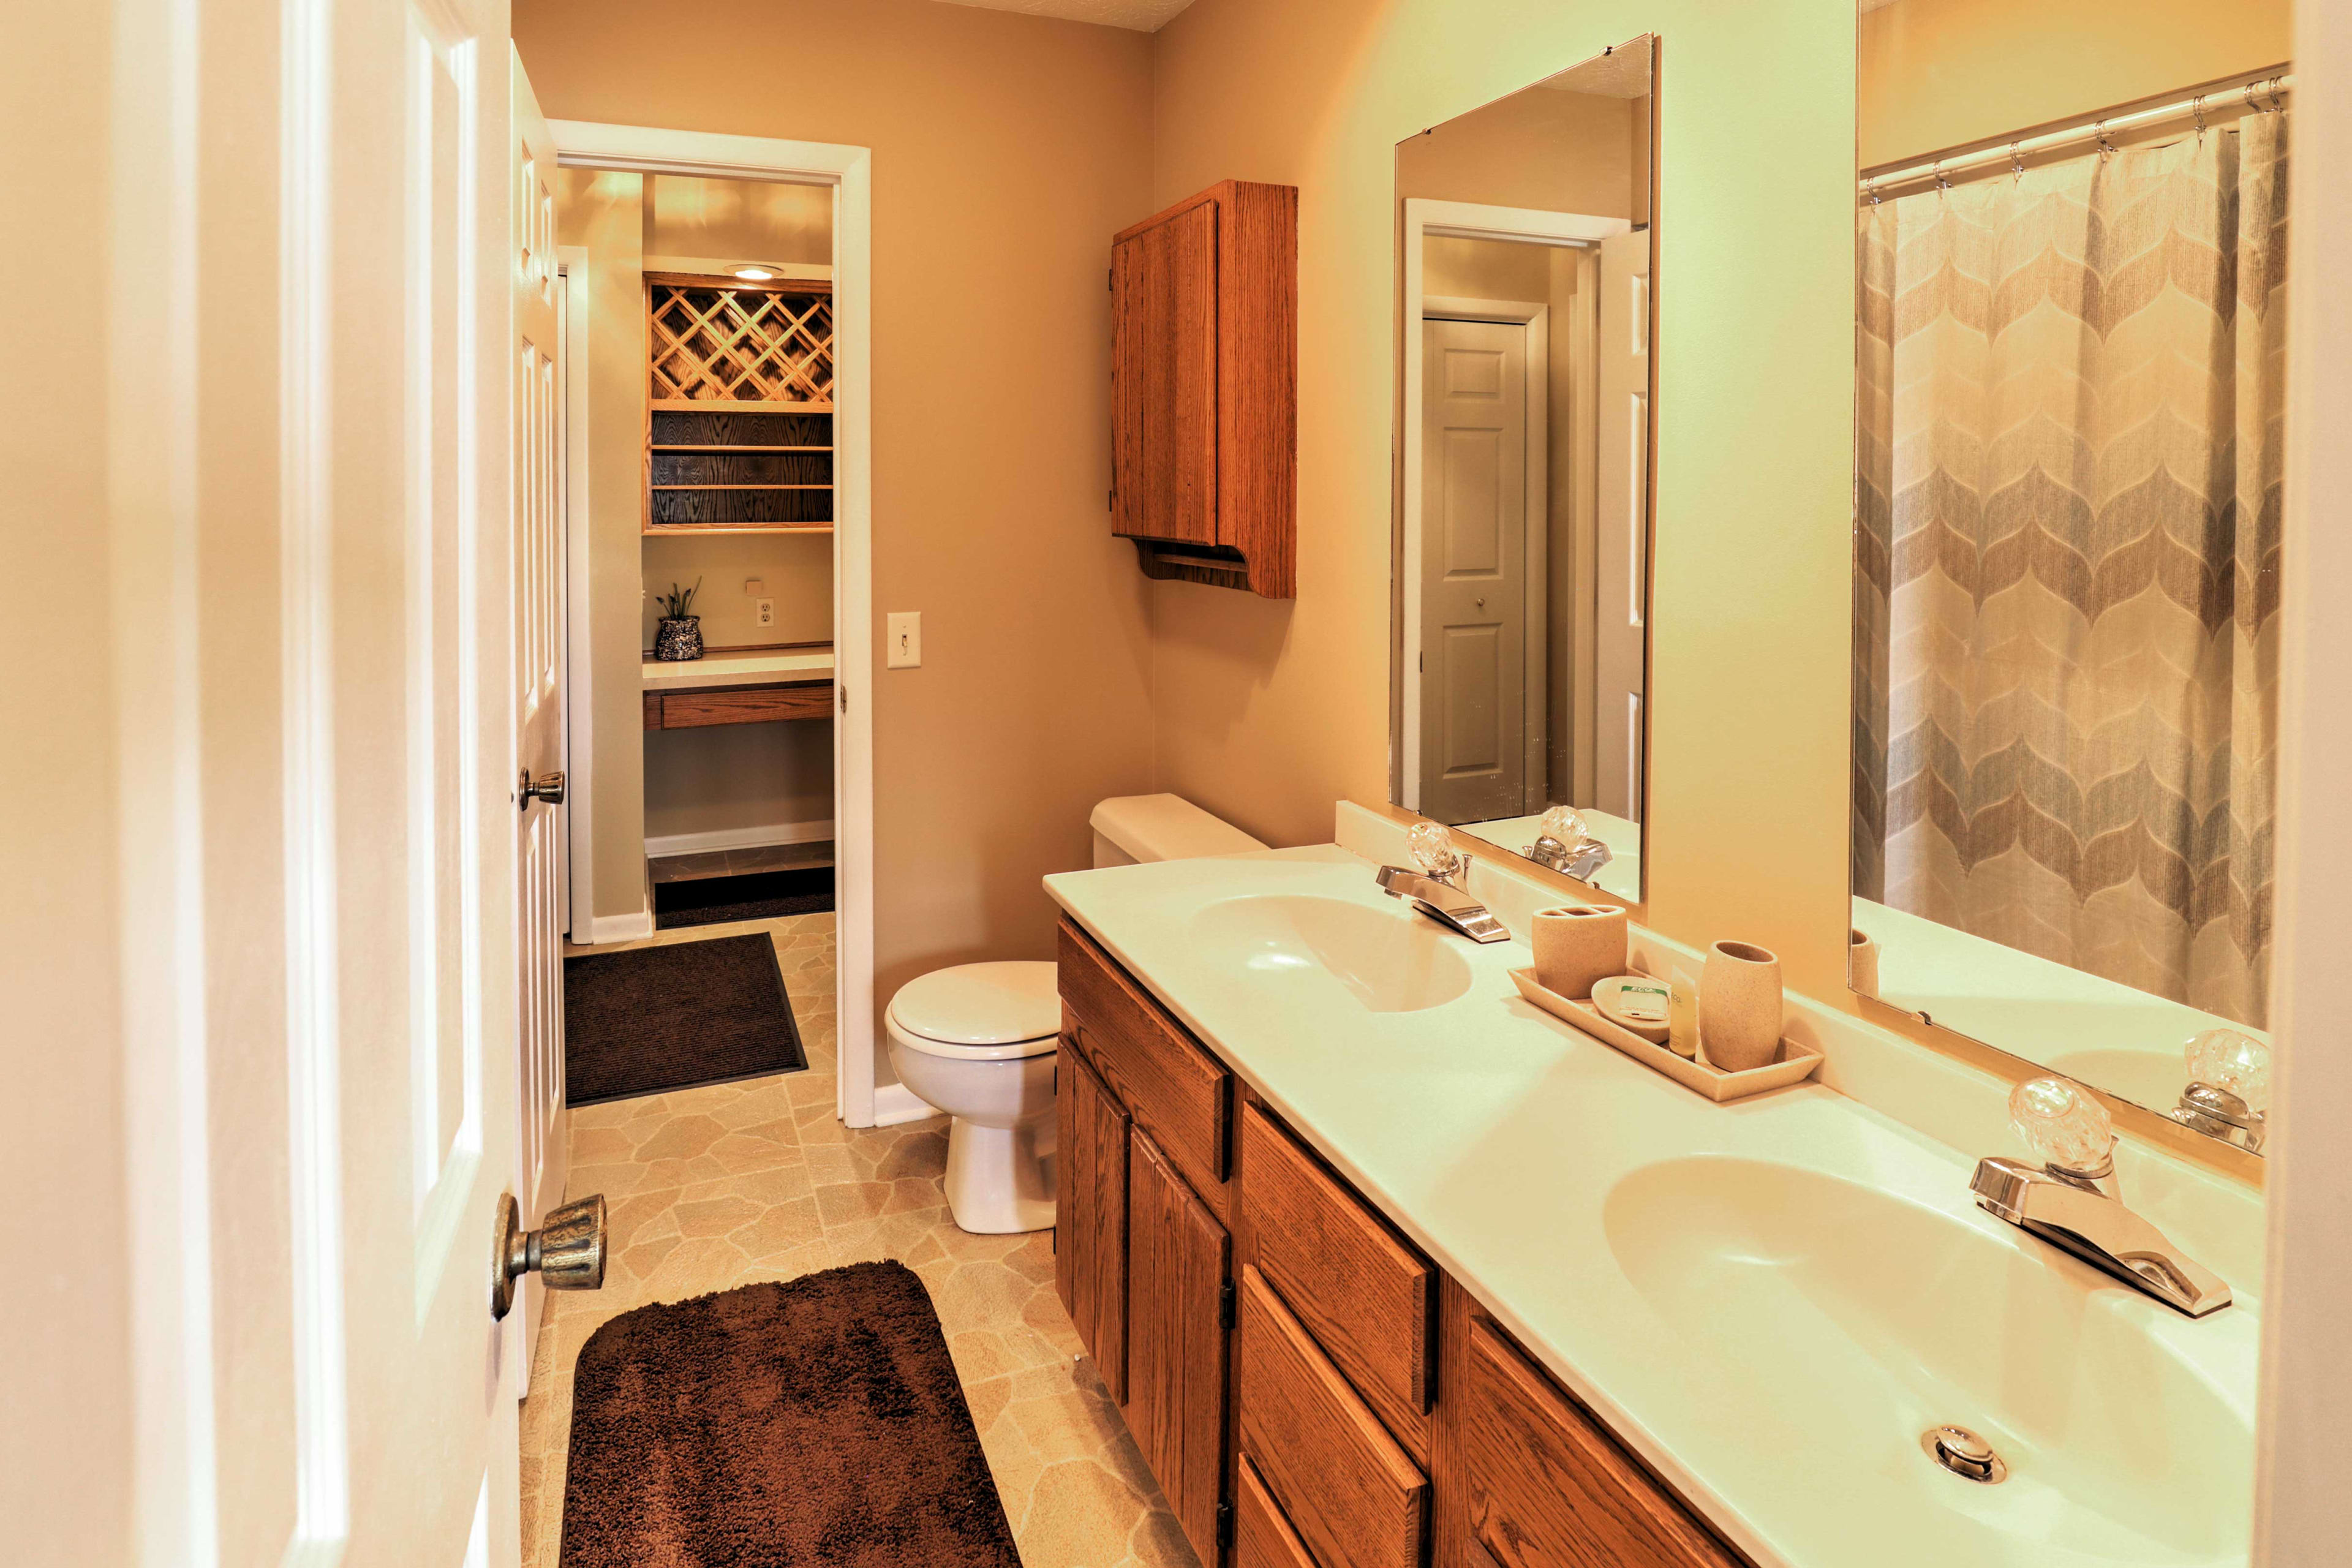 This home features 2 bathrooms for guests to use.